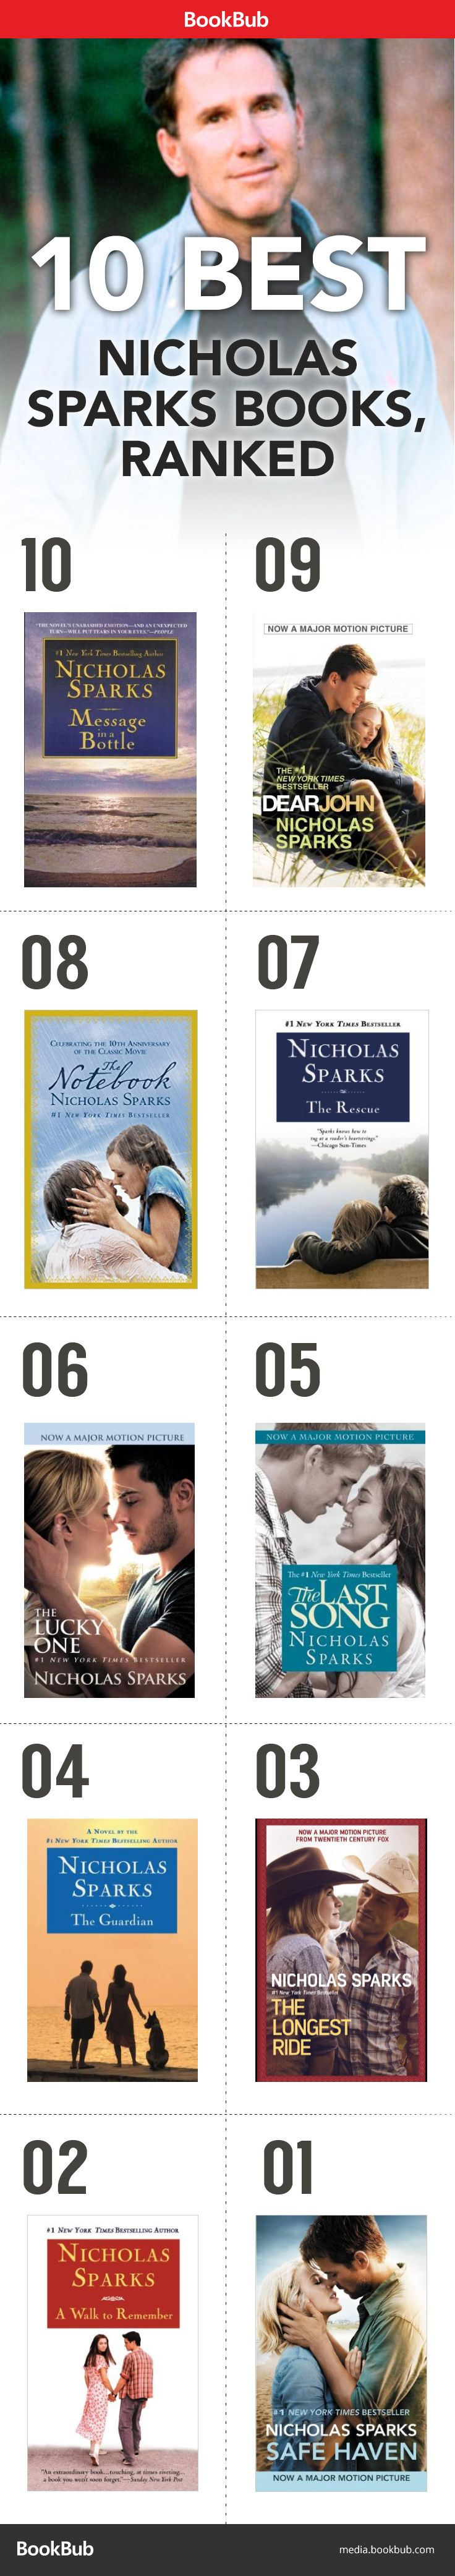 Do you agree with this ranking of the best Nicholas Sparks novels?